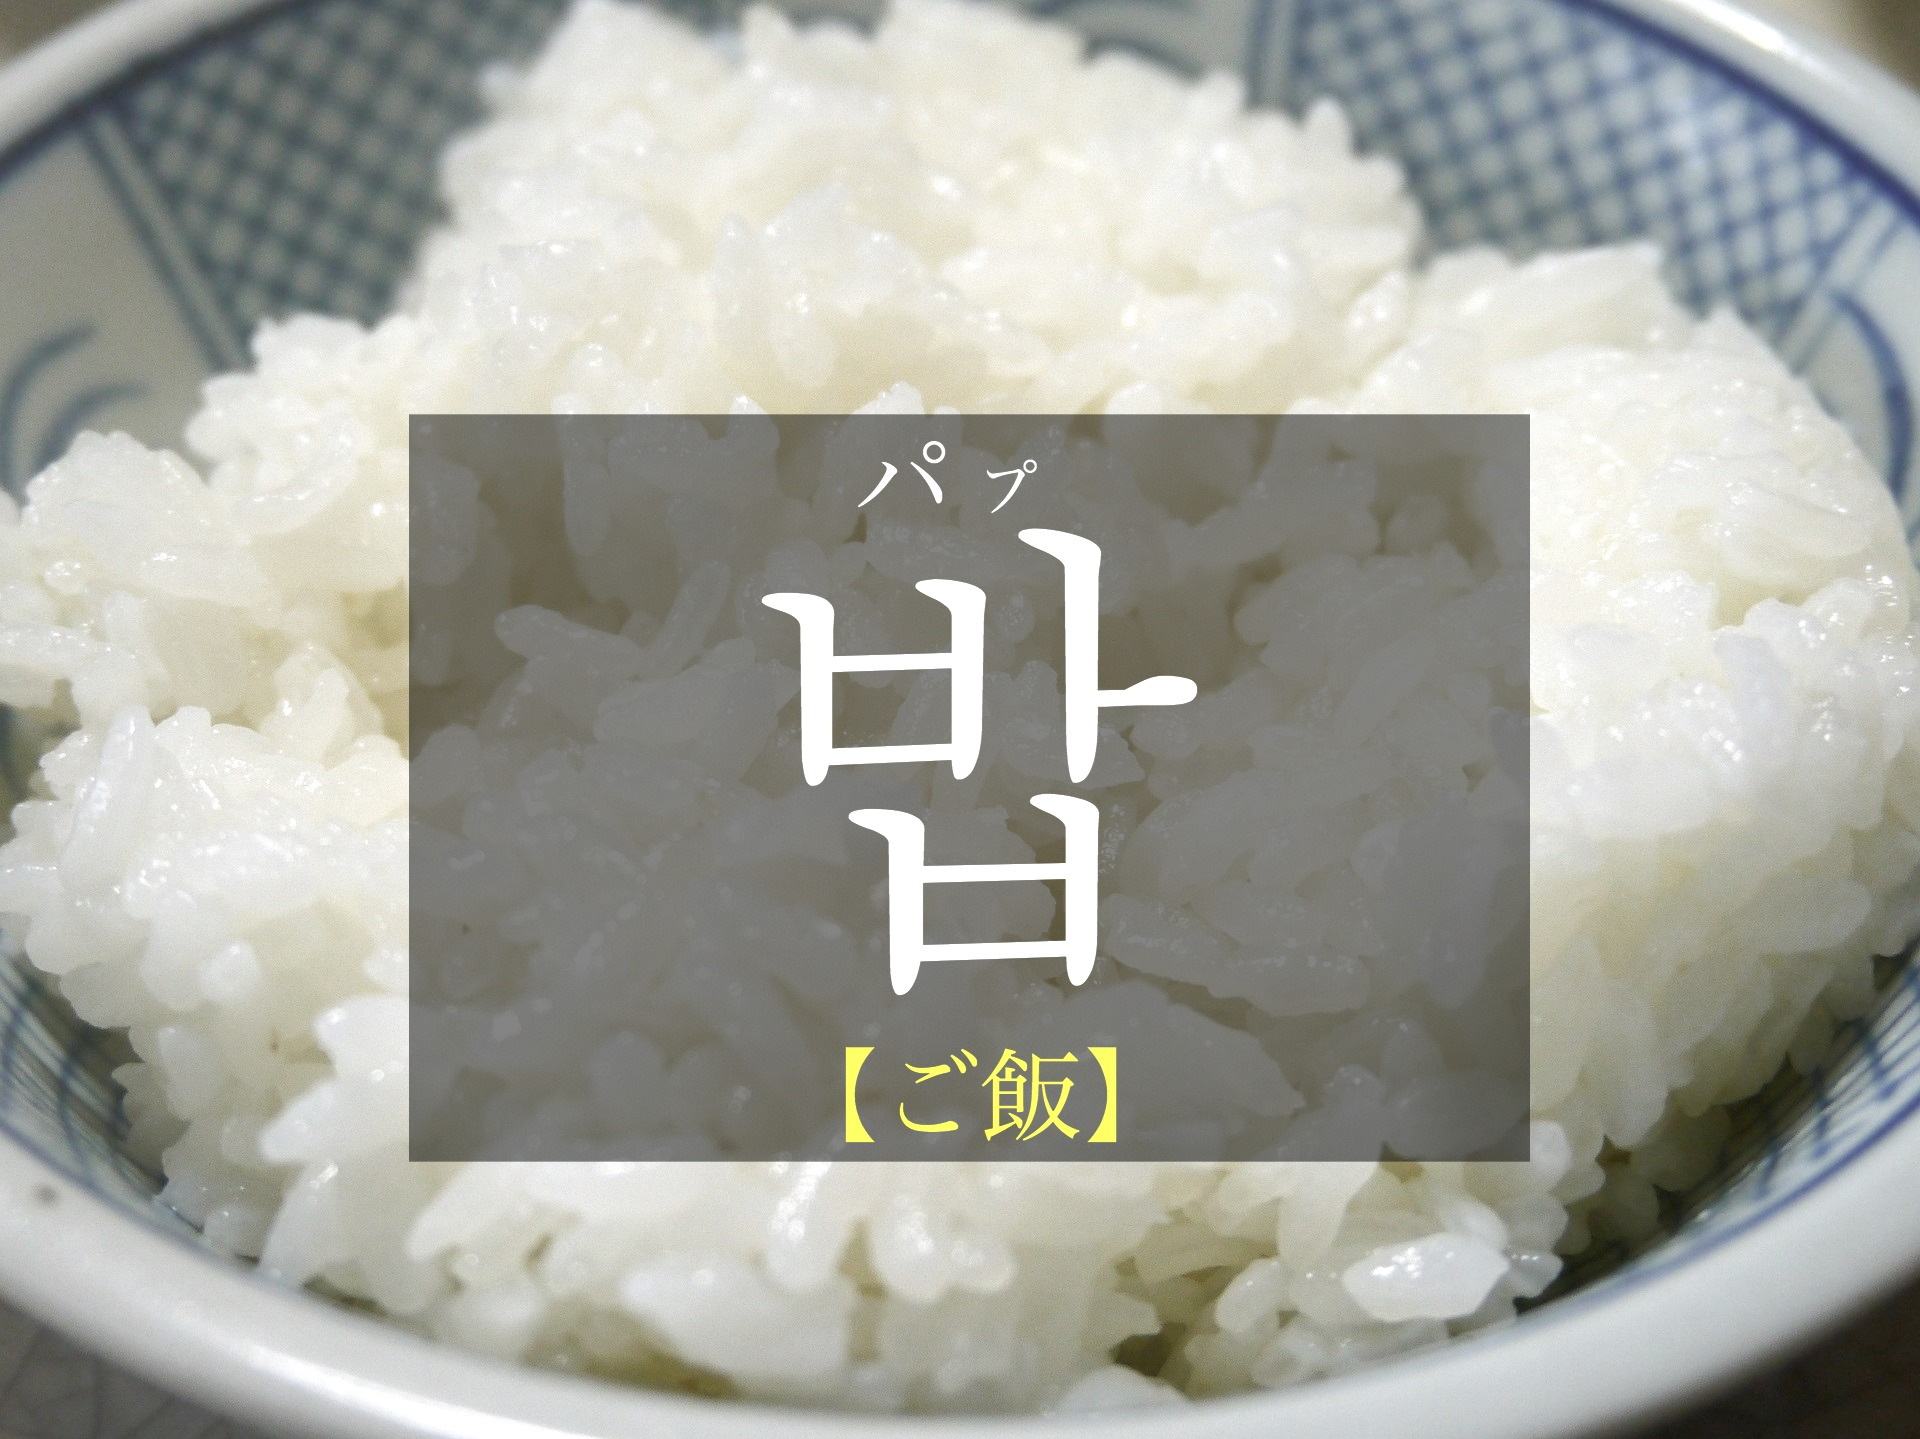 koreanword-cooked-rice